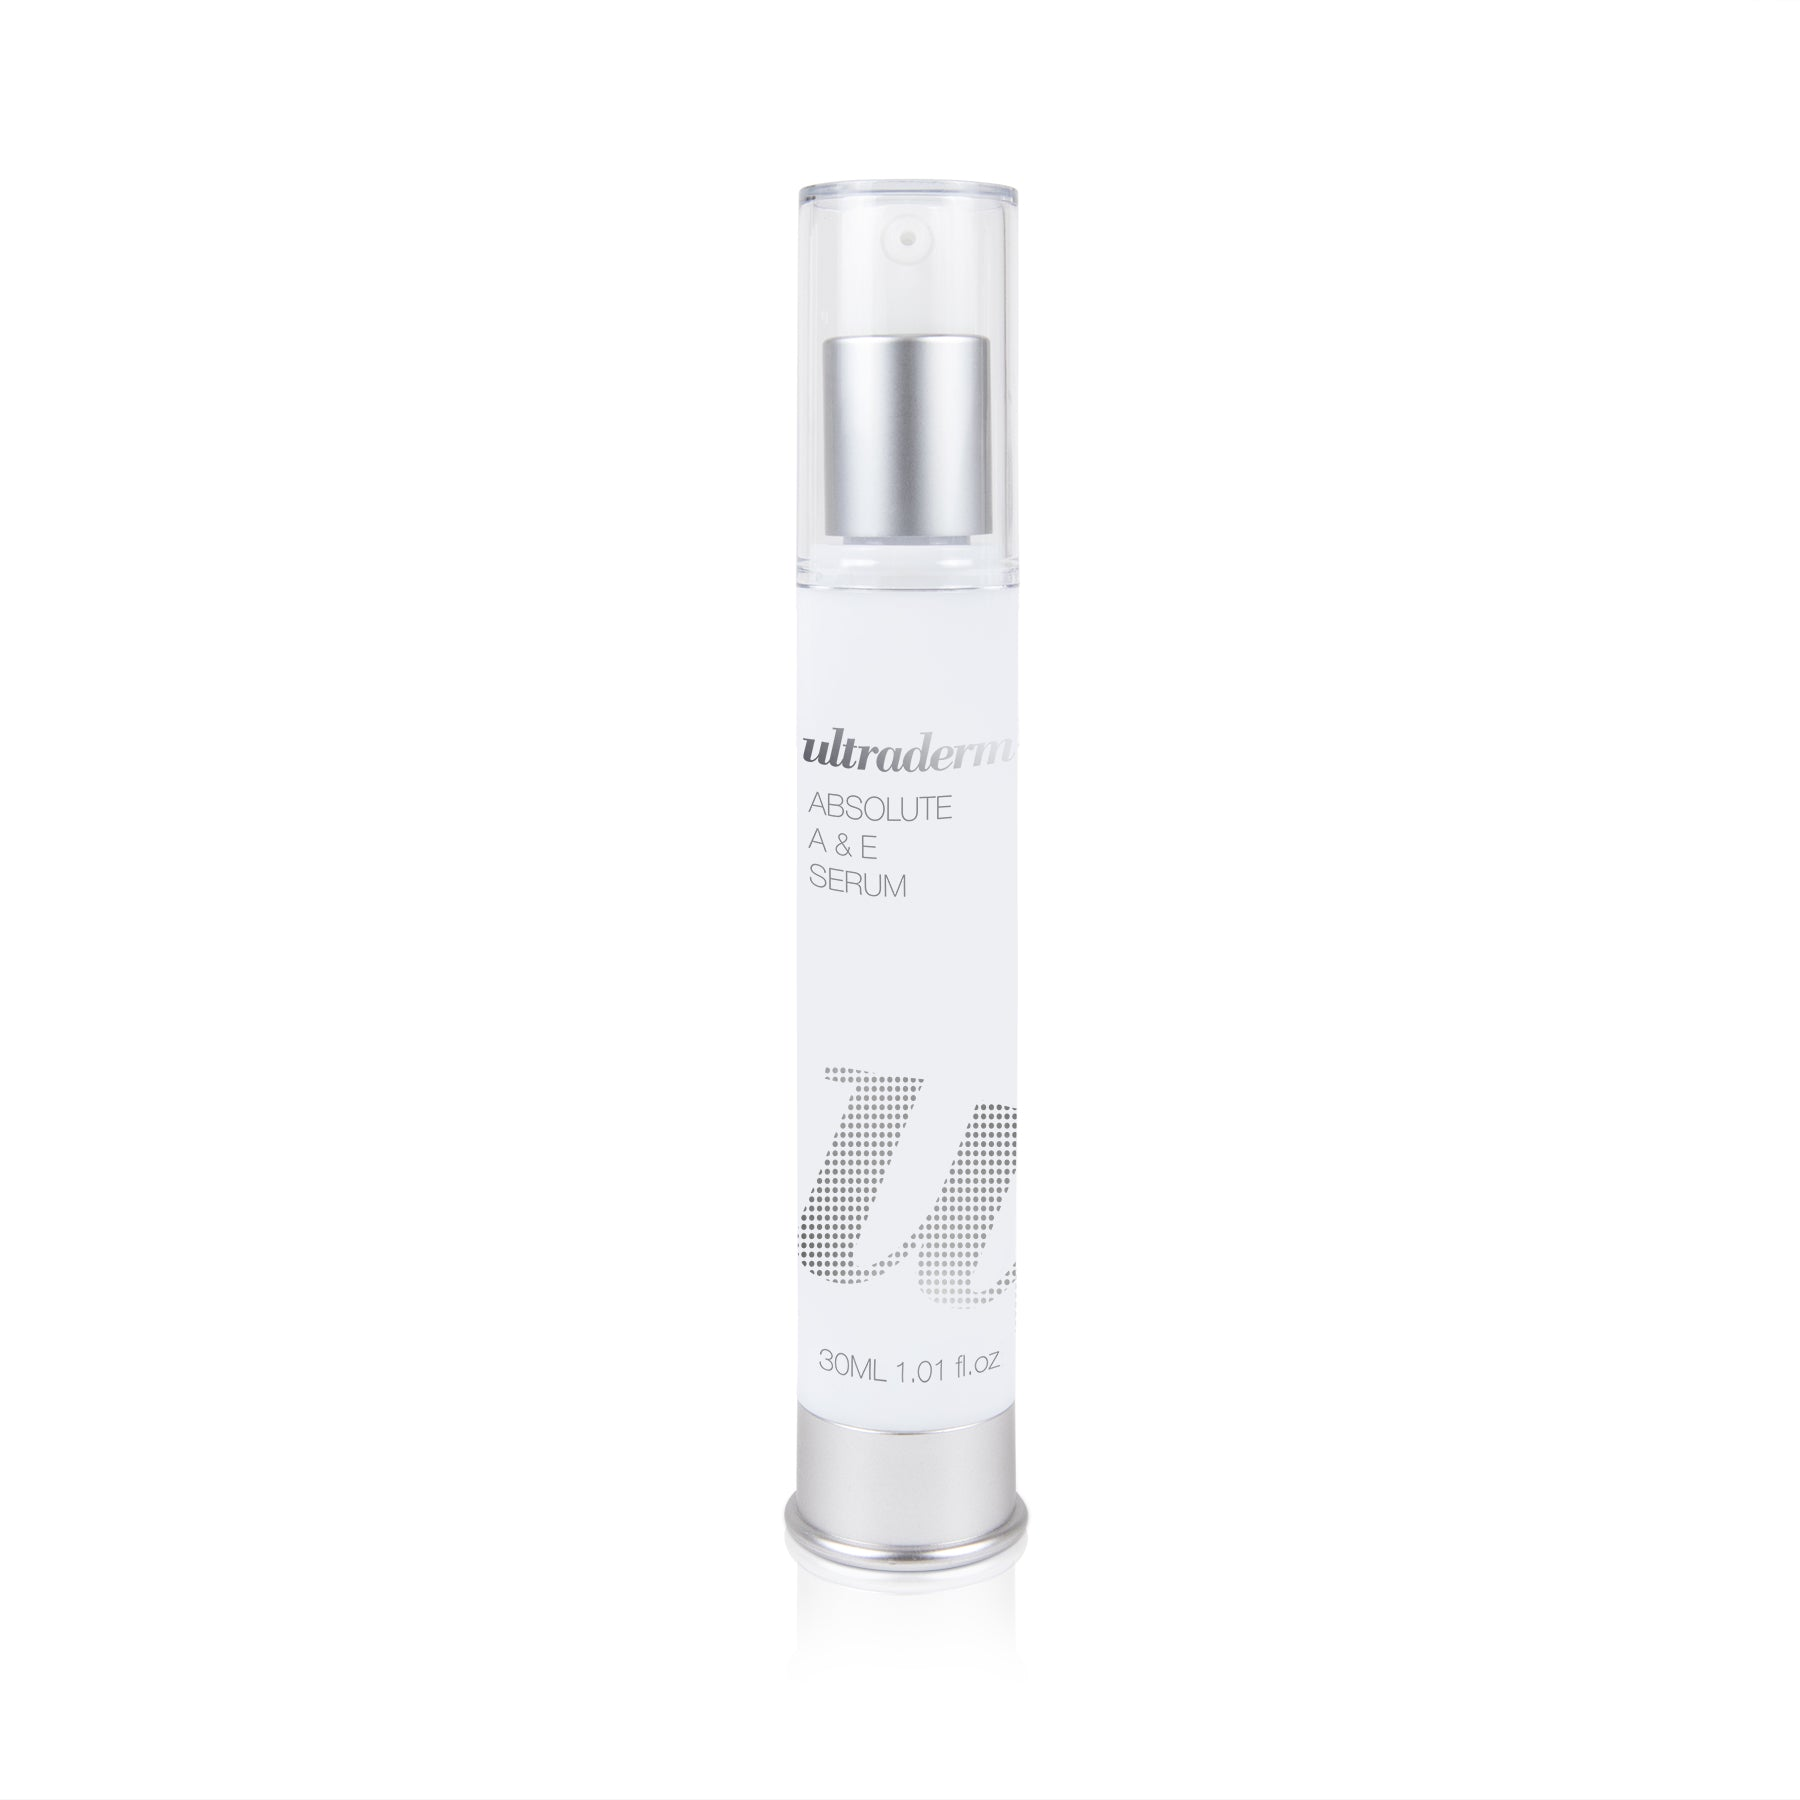 Ultraderm Absolute A & E Serum, Anti-Ageing Vitamin A & E Antioxidant Serum